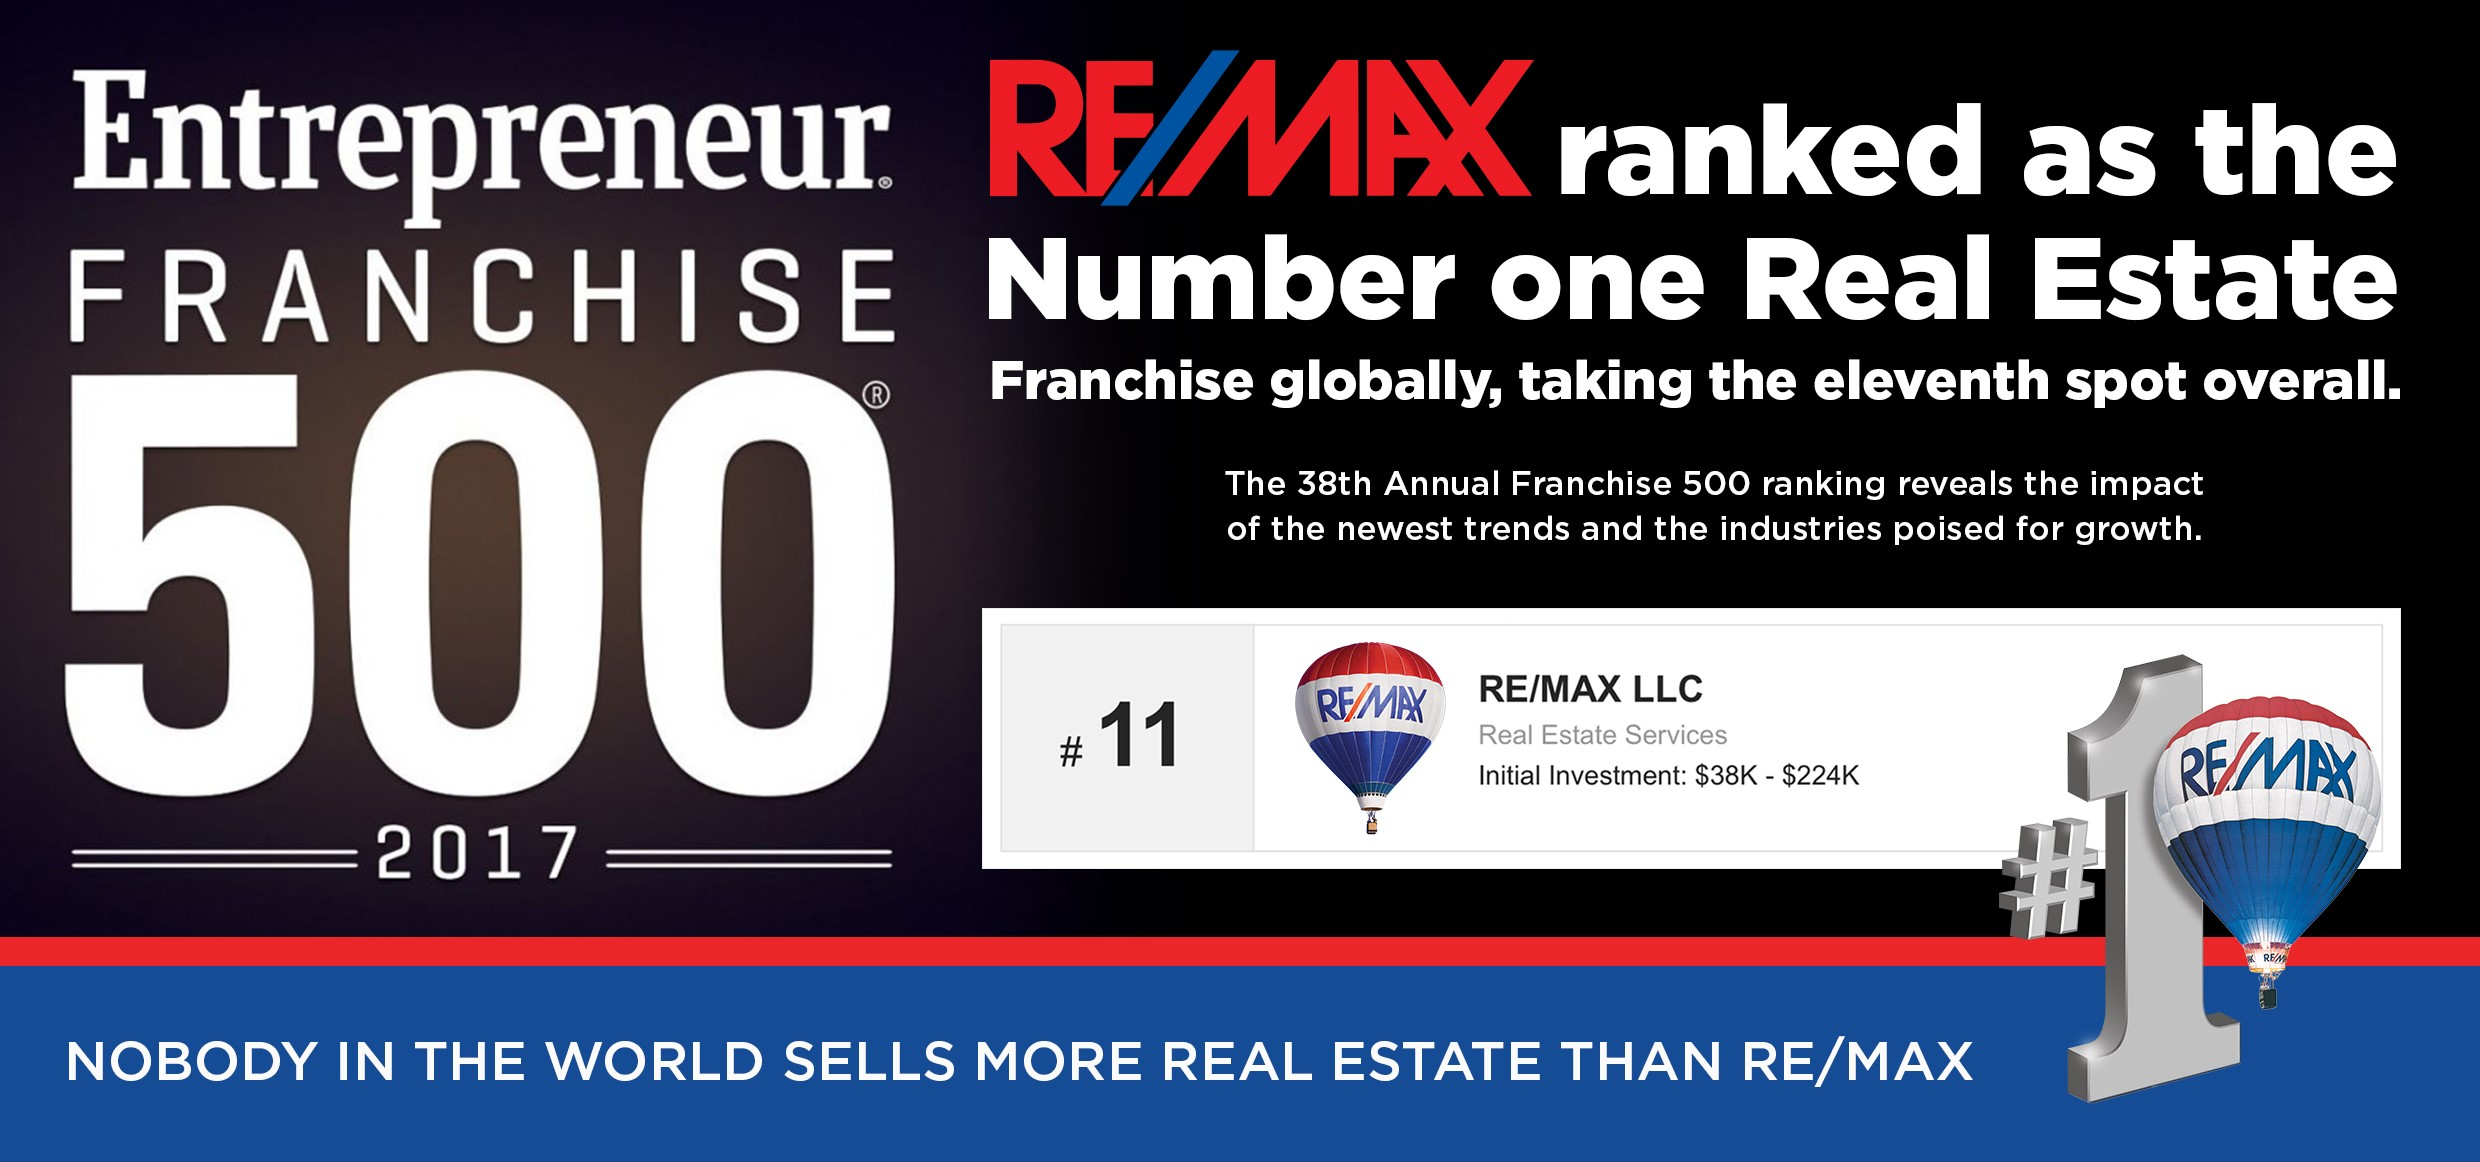 REMAX named top Global real estate franchise